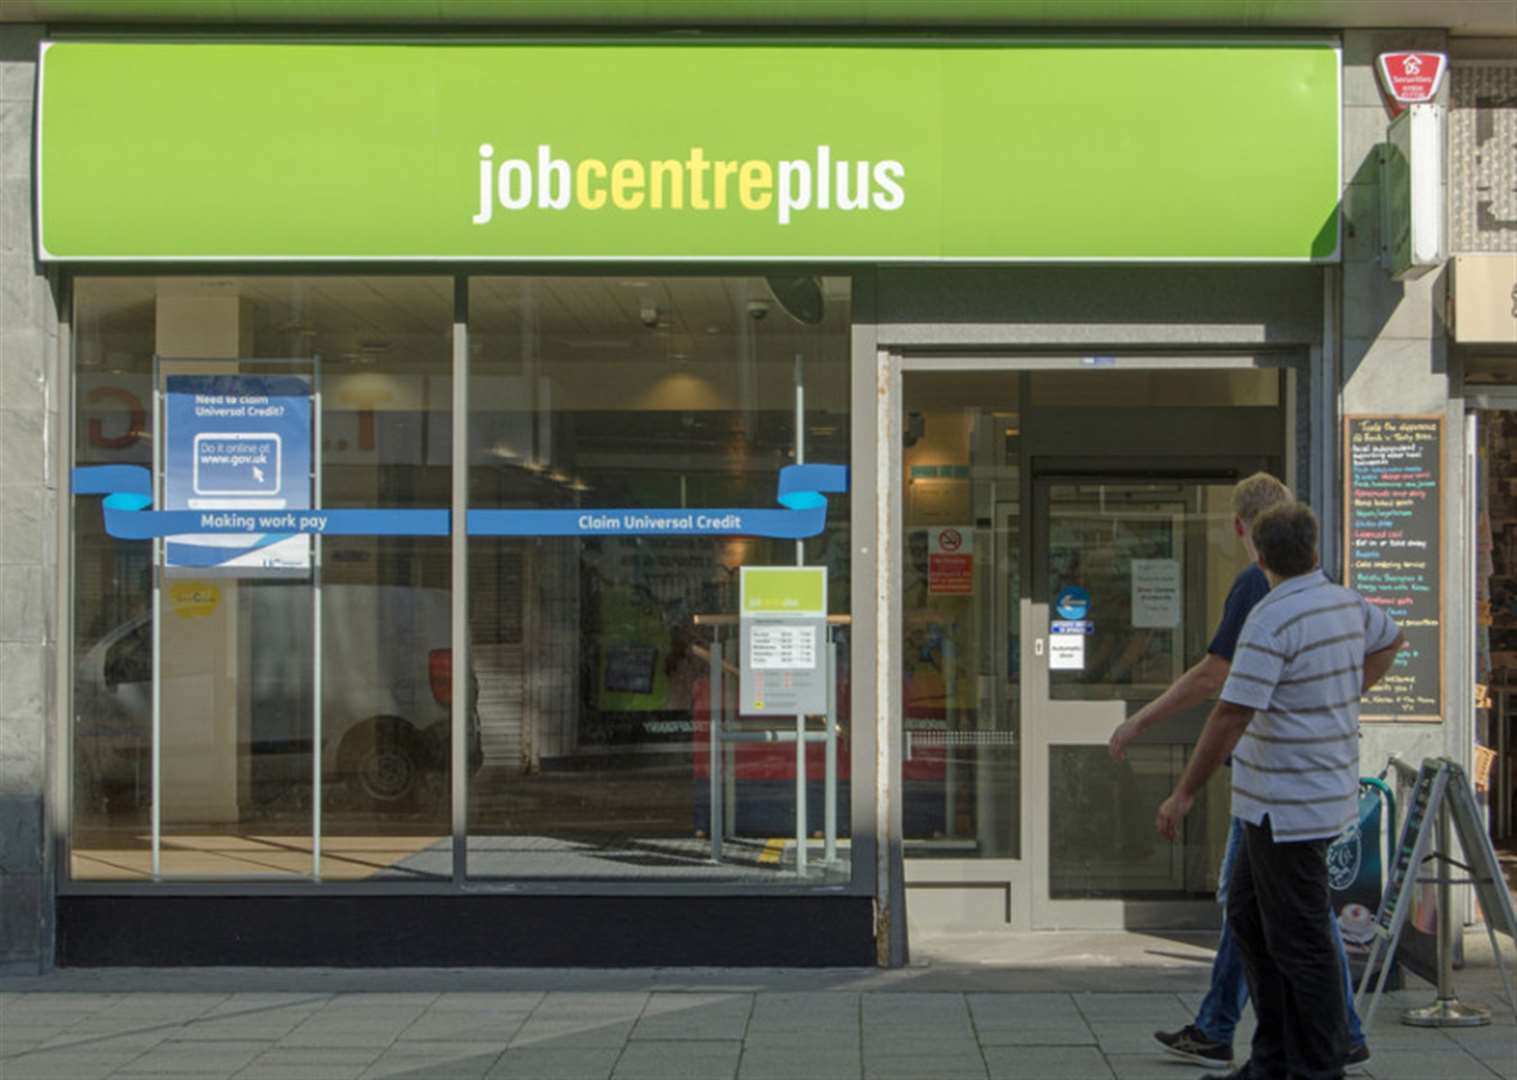 UK unemployment at 11-year low, but figures conceal problem at heart of economy, say TUC